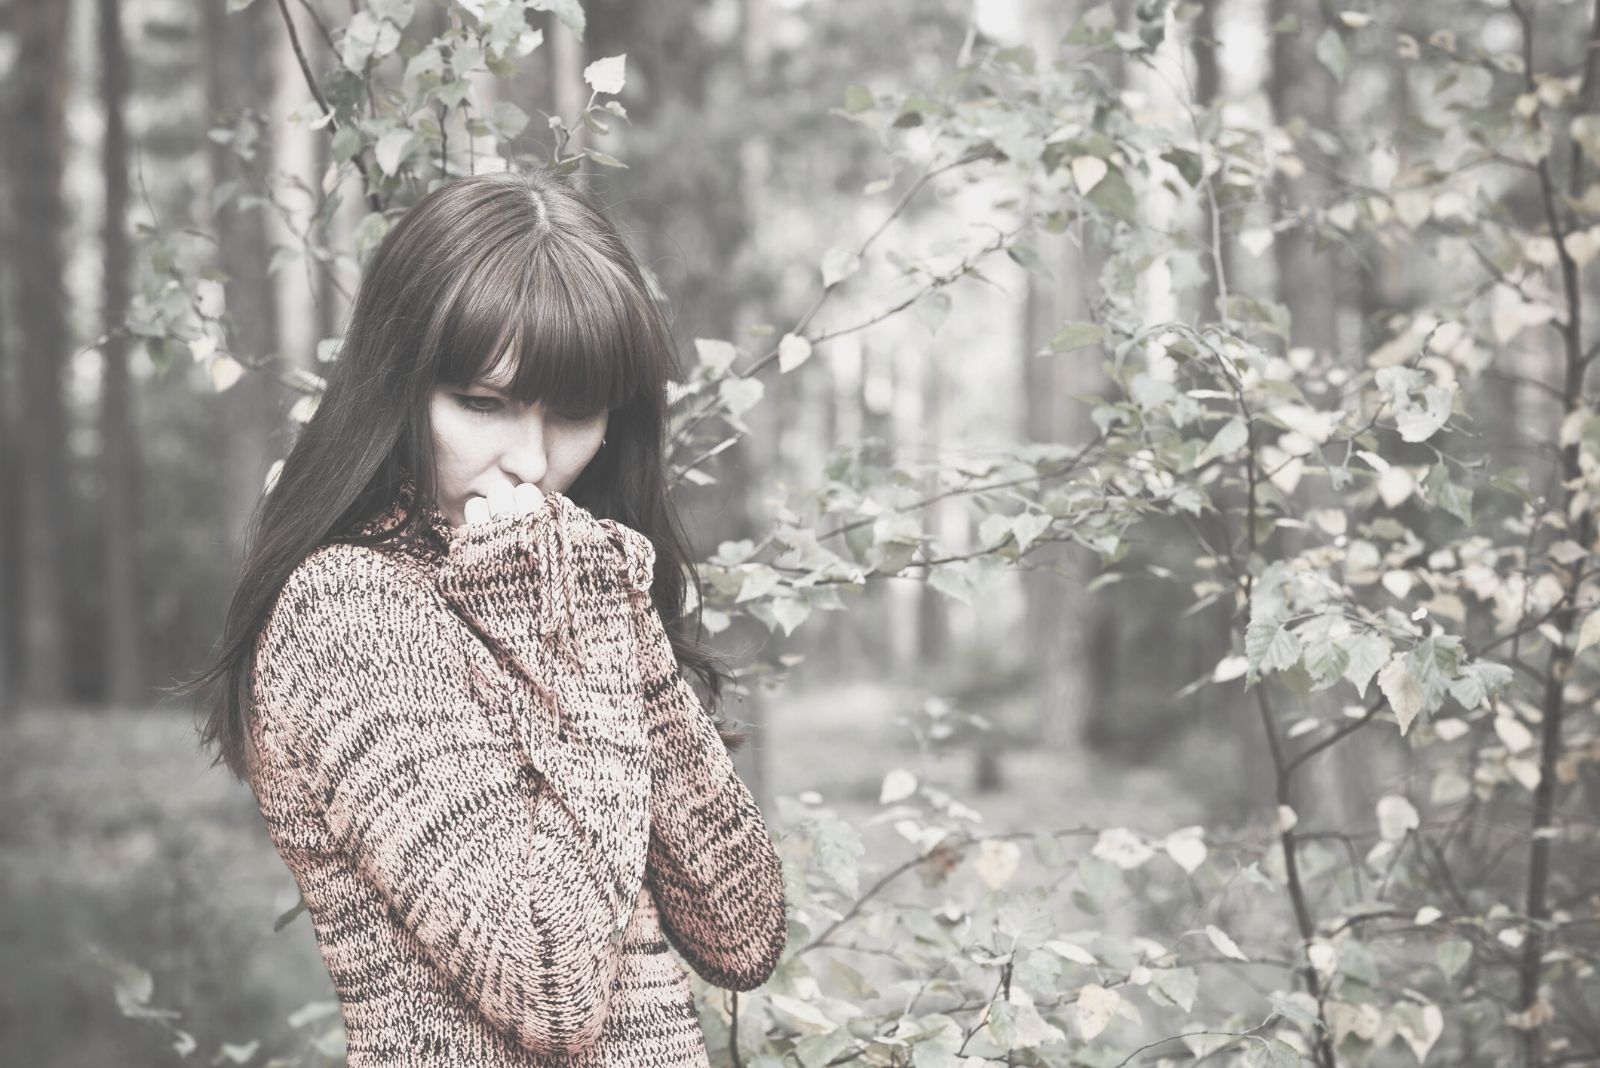 beautiful woman thoughtful wearing thick sweater standing in the forest during cold season